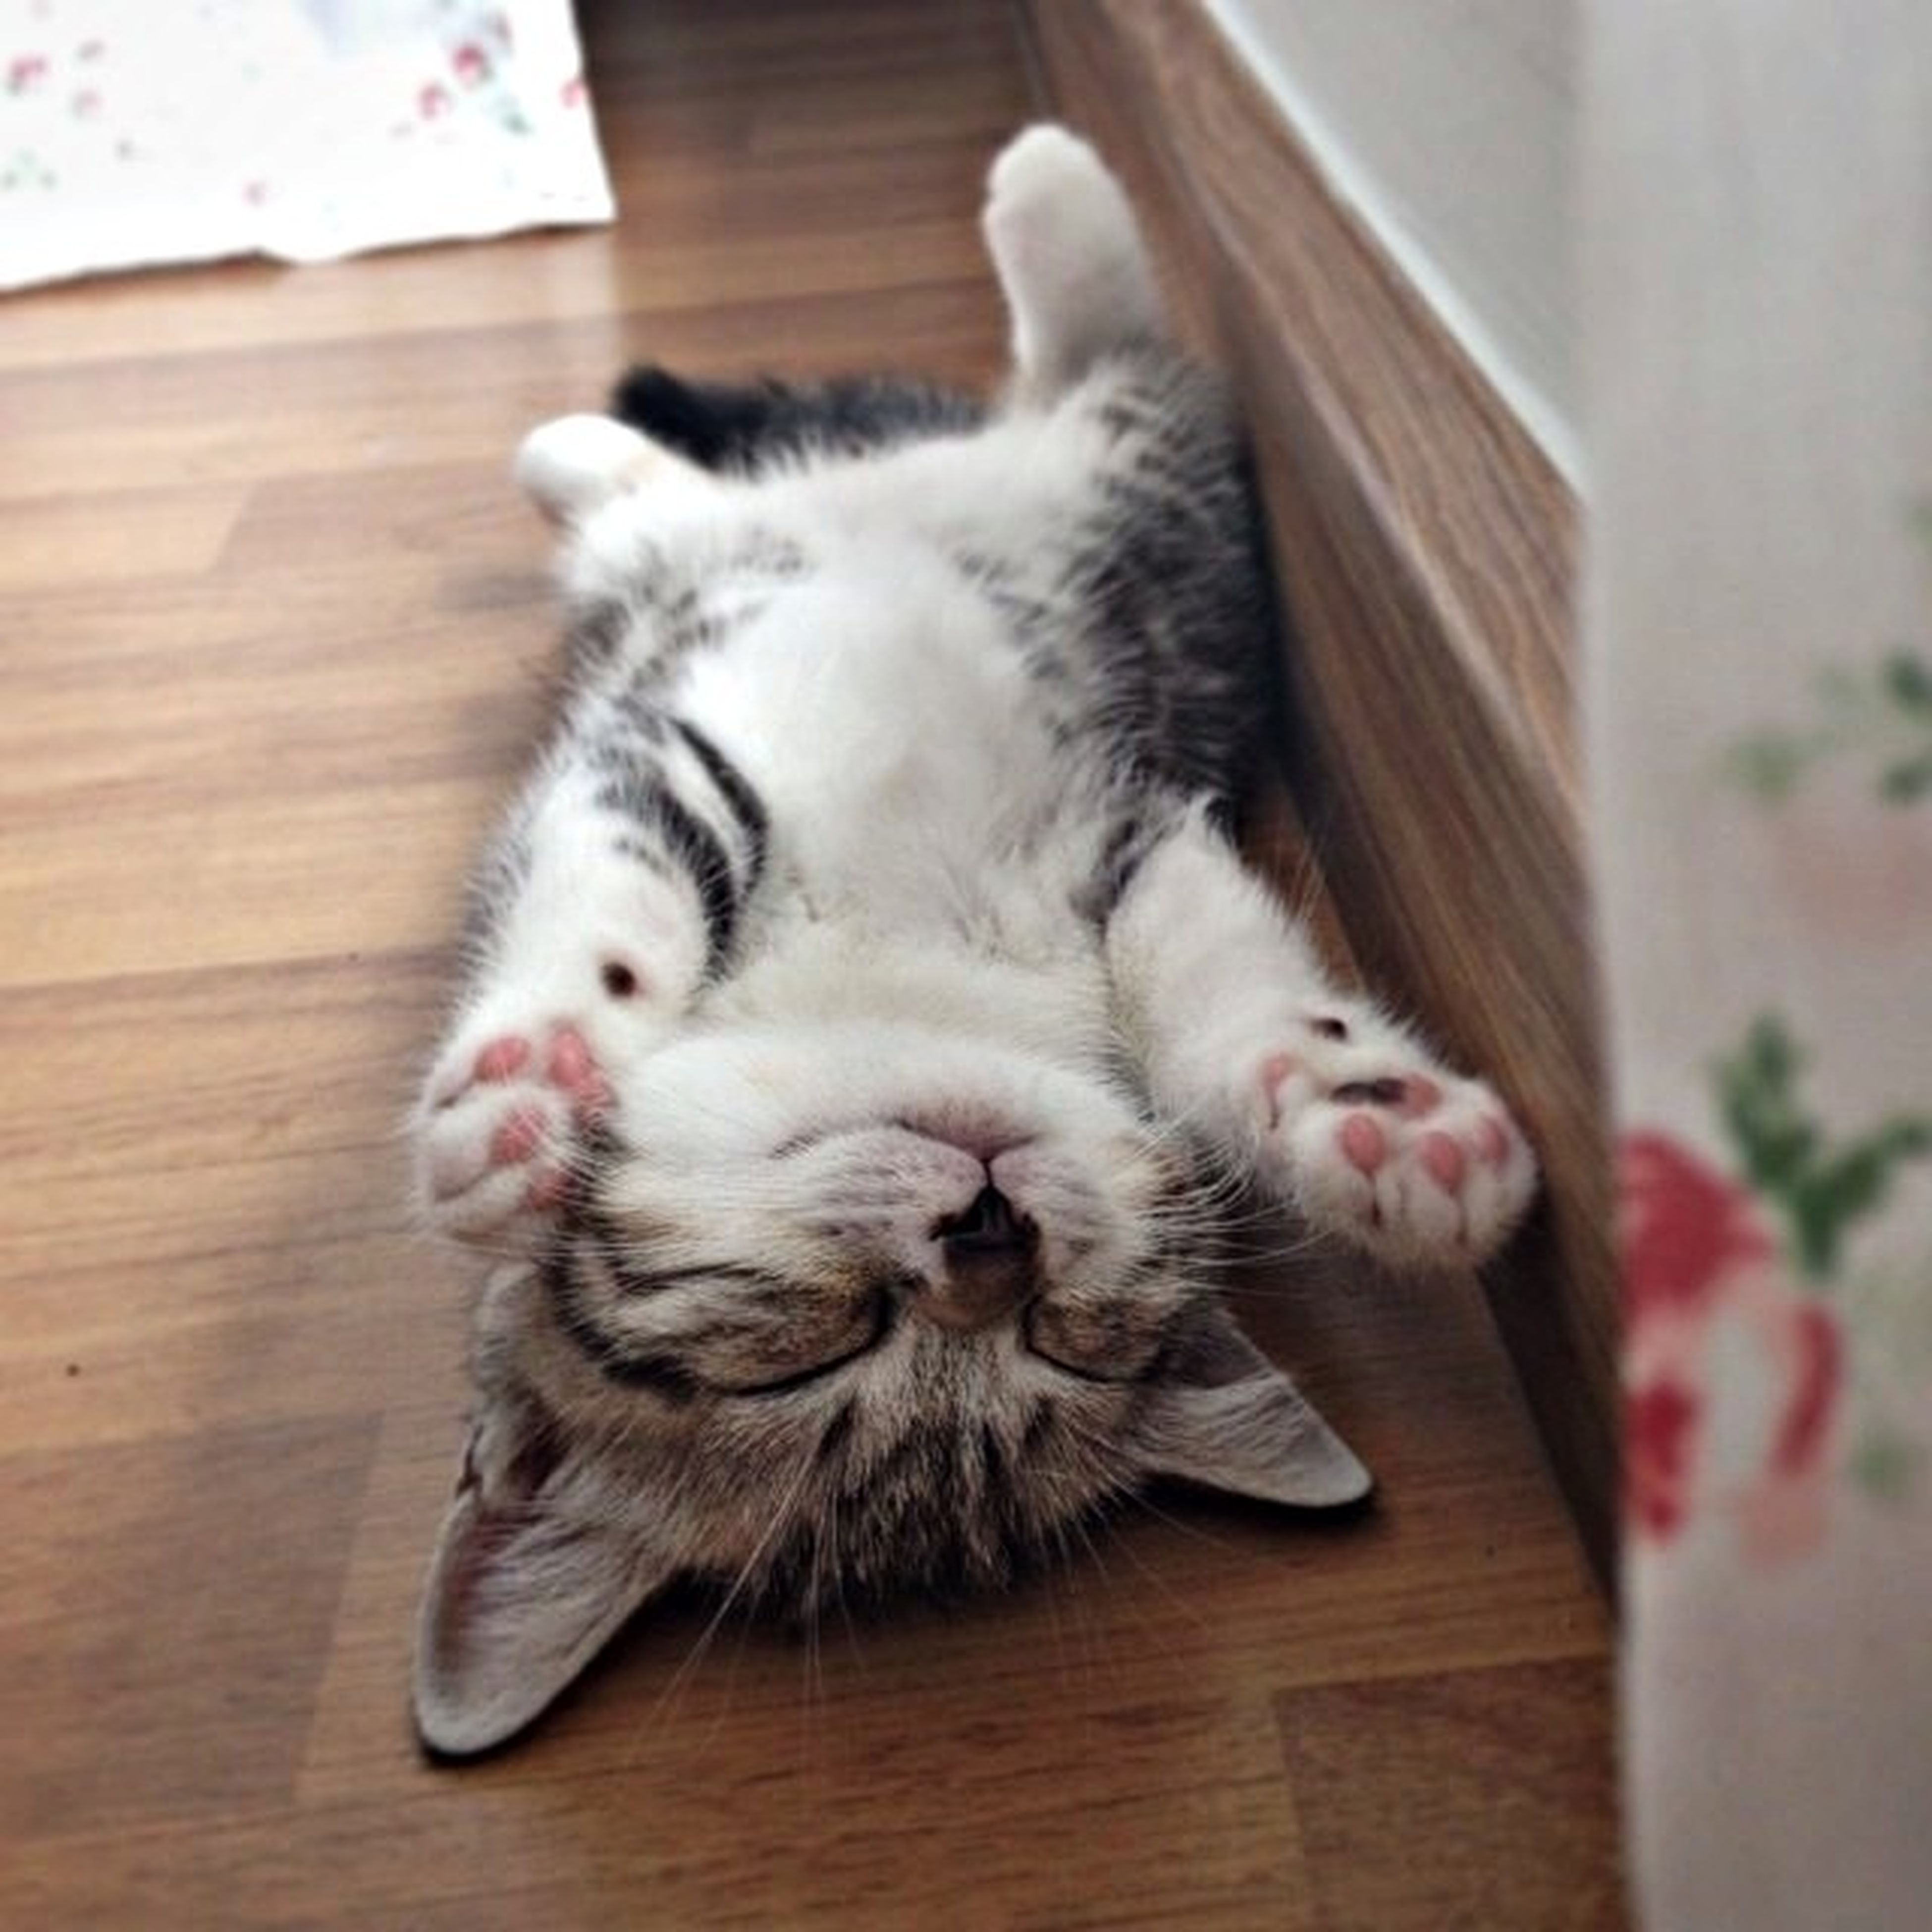 pets, domestic animals, indoors, animal themes, mammal, domestic cat, one animal, cat, feline, relaxation, hardwood floor, home interior, wood - material, table, whisker, flooring, close-up, lying down, resting, looking at camera